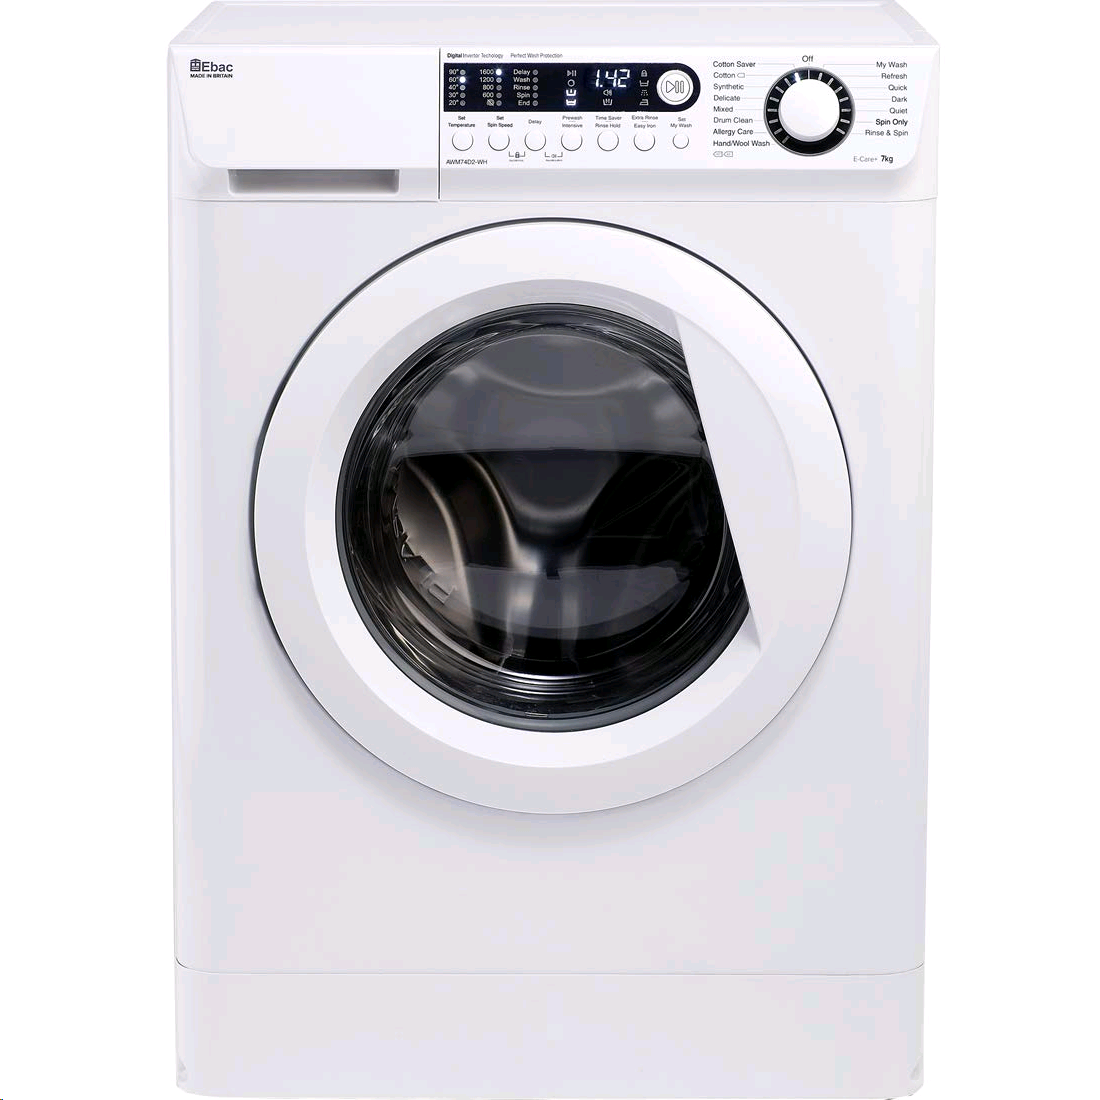 Ebac E-Care AWM74D2-WH Cold Fill Washing Machine 7kg 1400 Spin Speed A+++